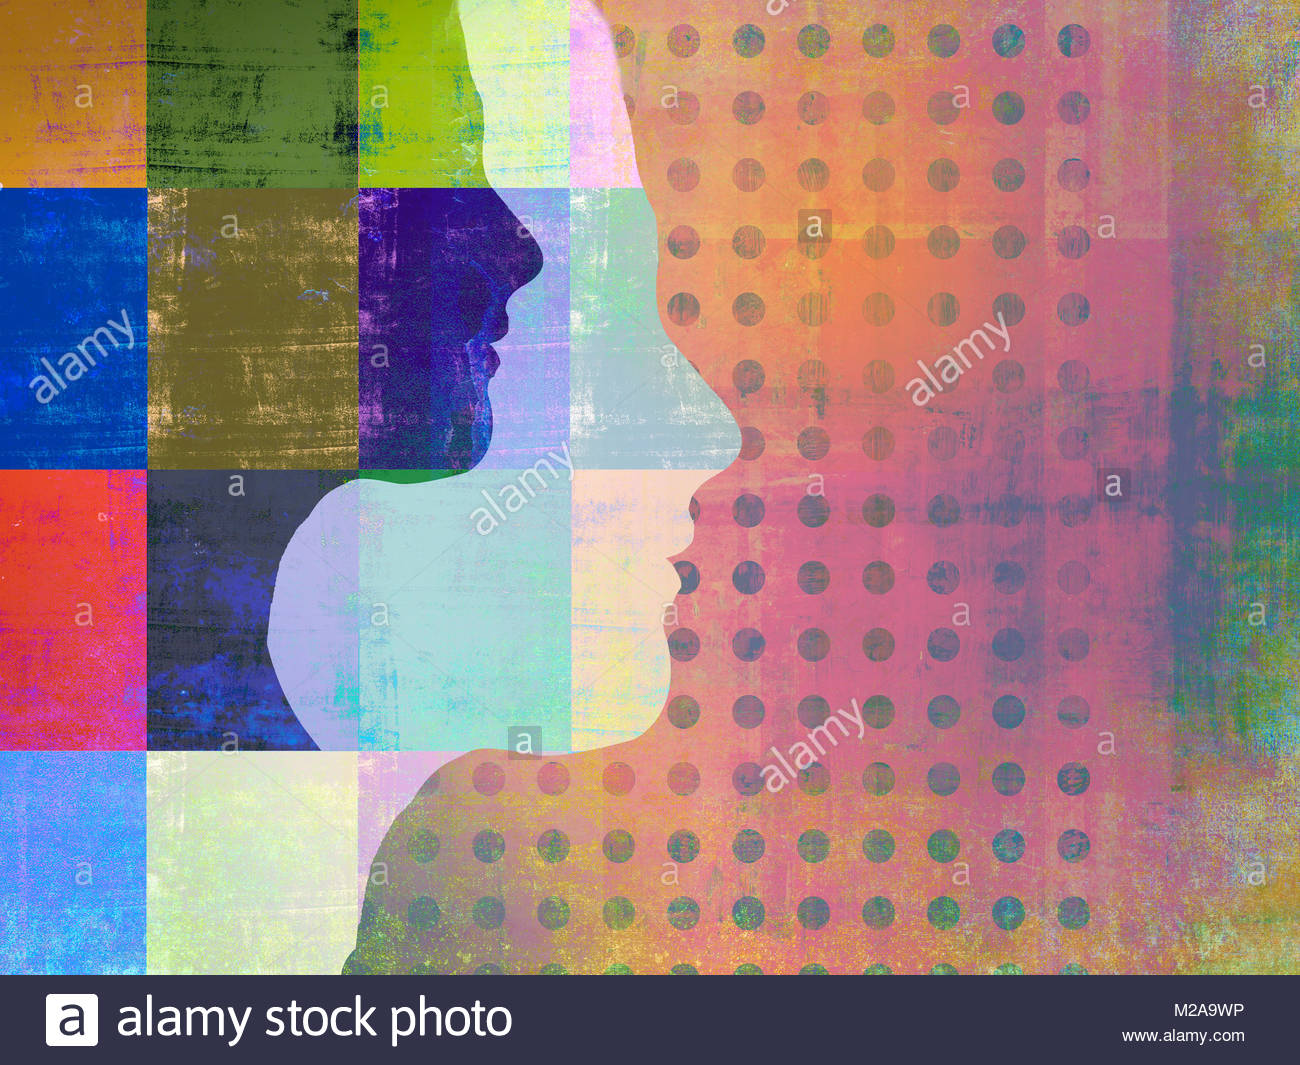 Woman's profiles superimposed on abstract pattern - Stock Image